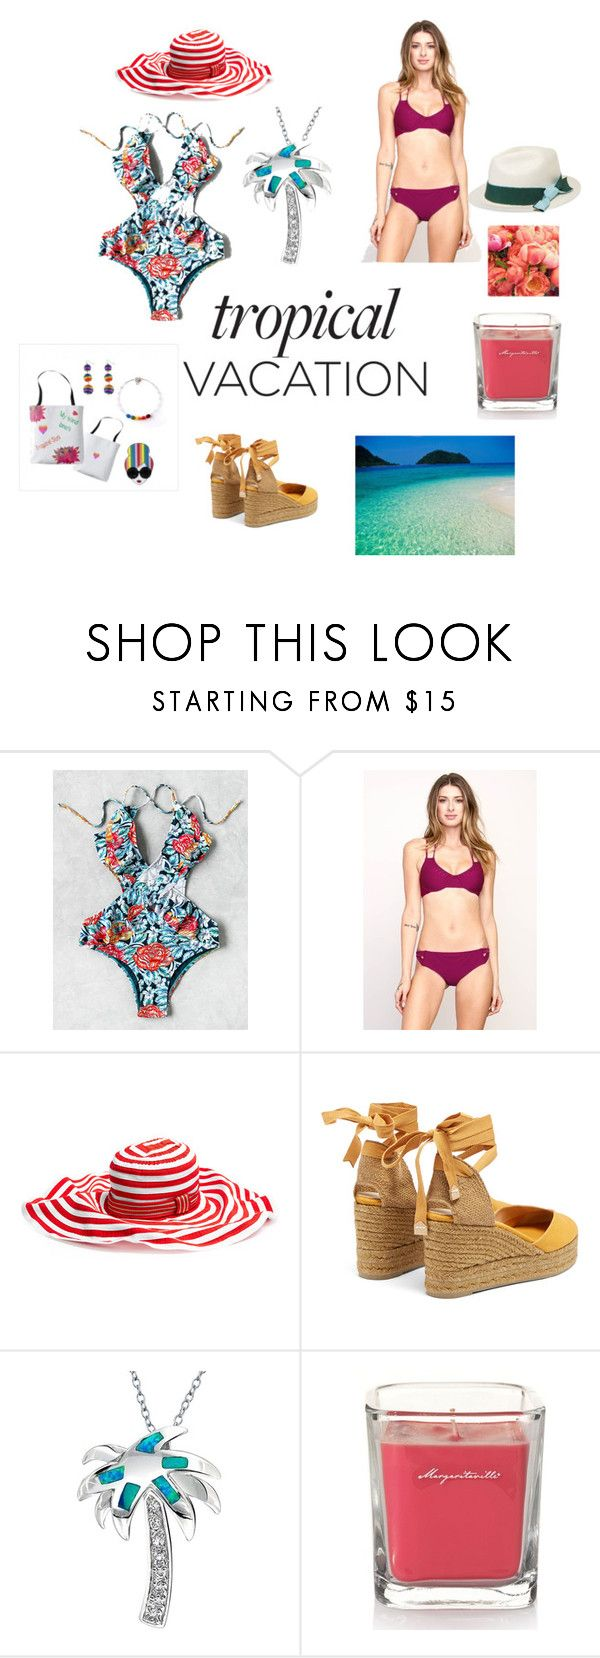 Tropical Vacation by mkadric on Polyvore featuring RVCA, Castañer, Bling Jewelry, Missoni Mare, Sensi Studio, Yankee Candle and Ultimate